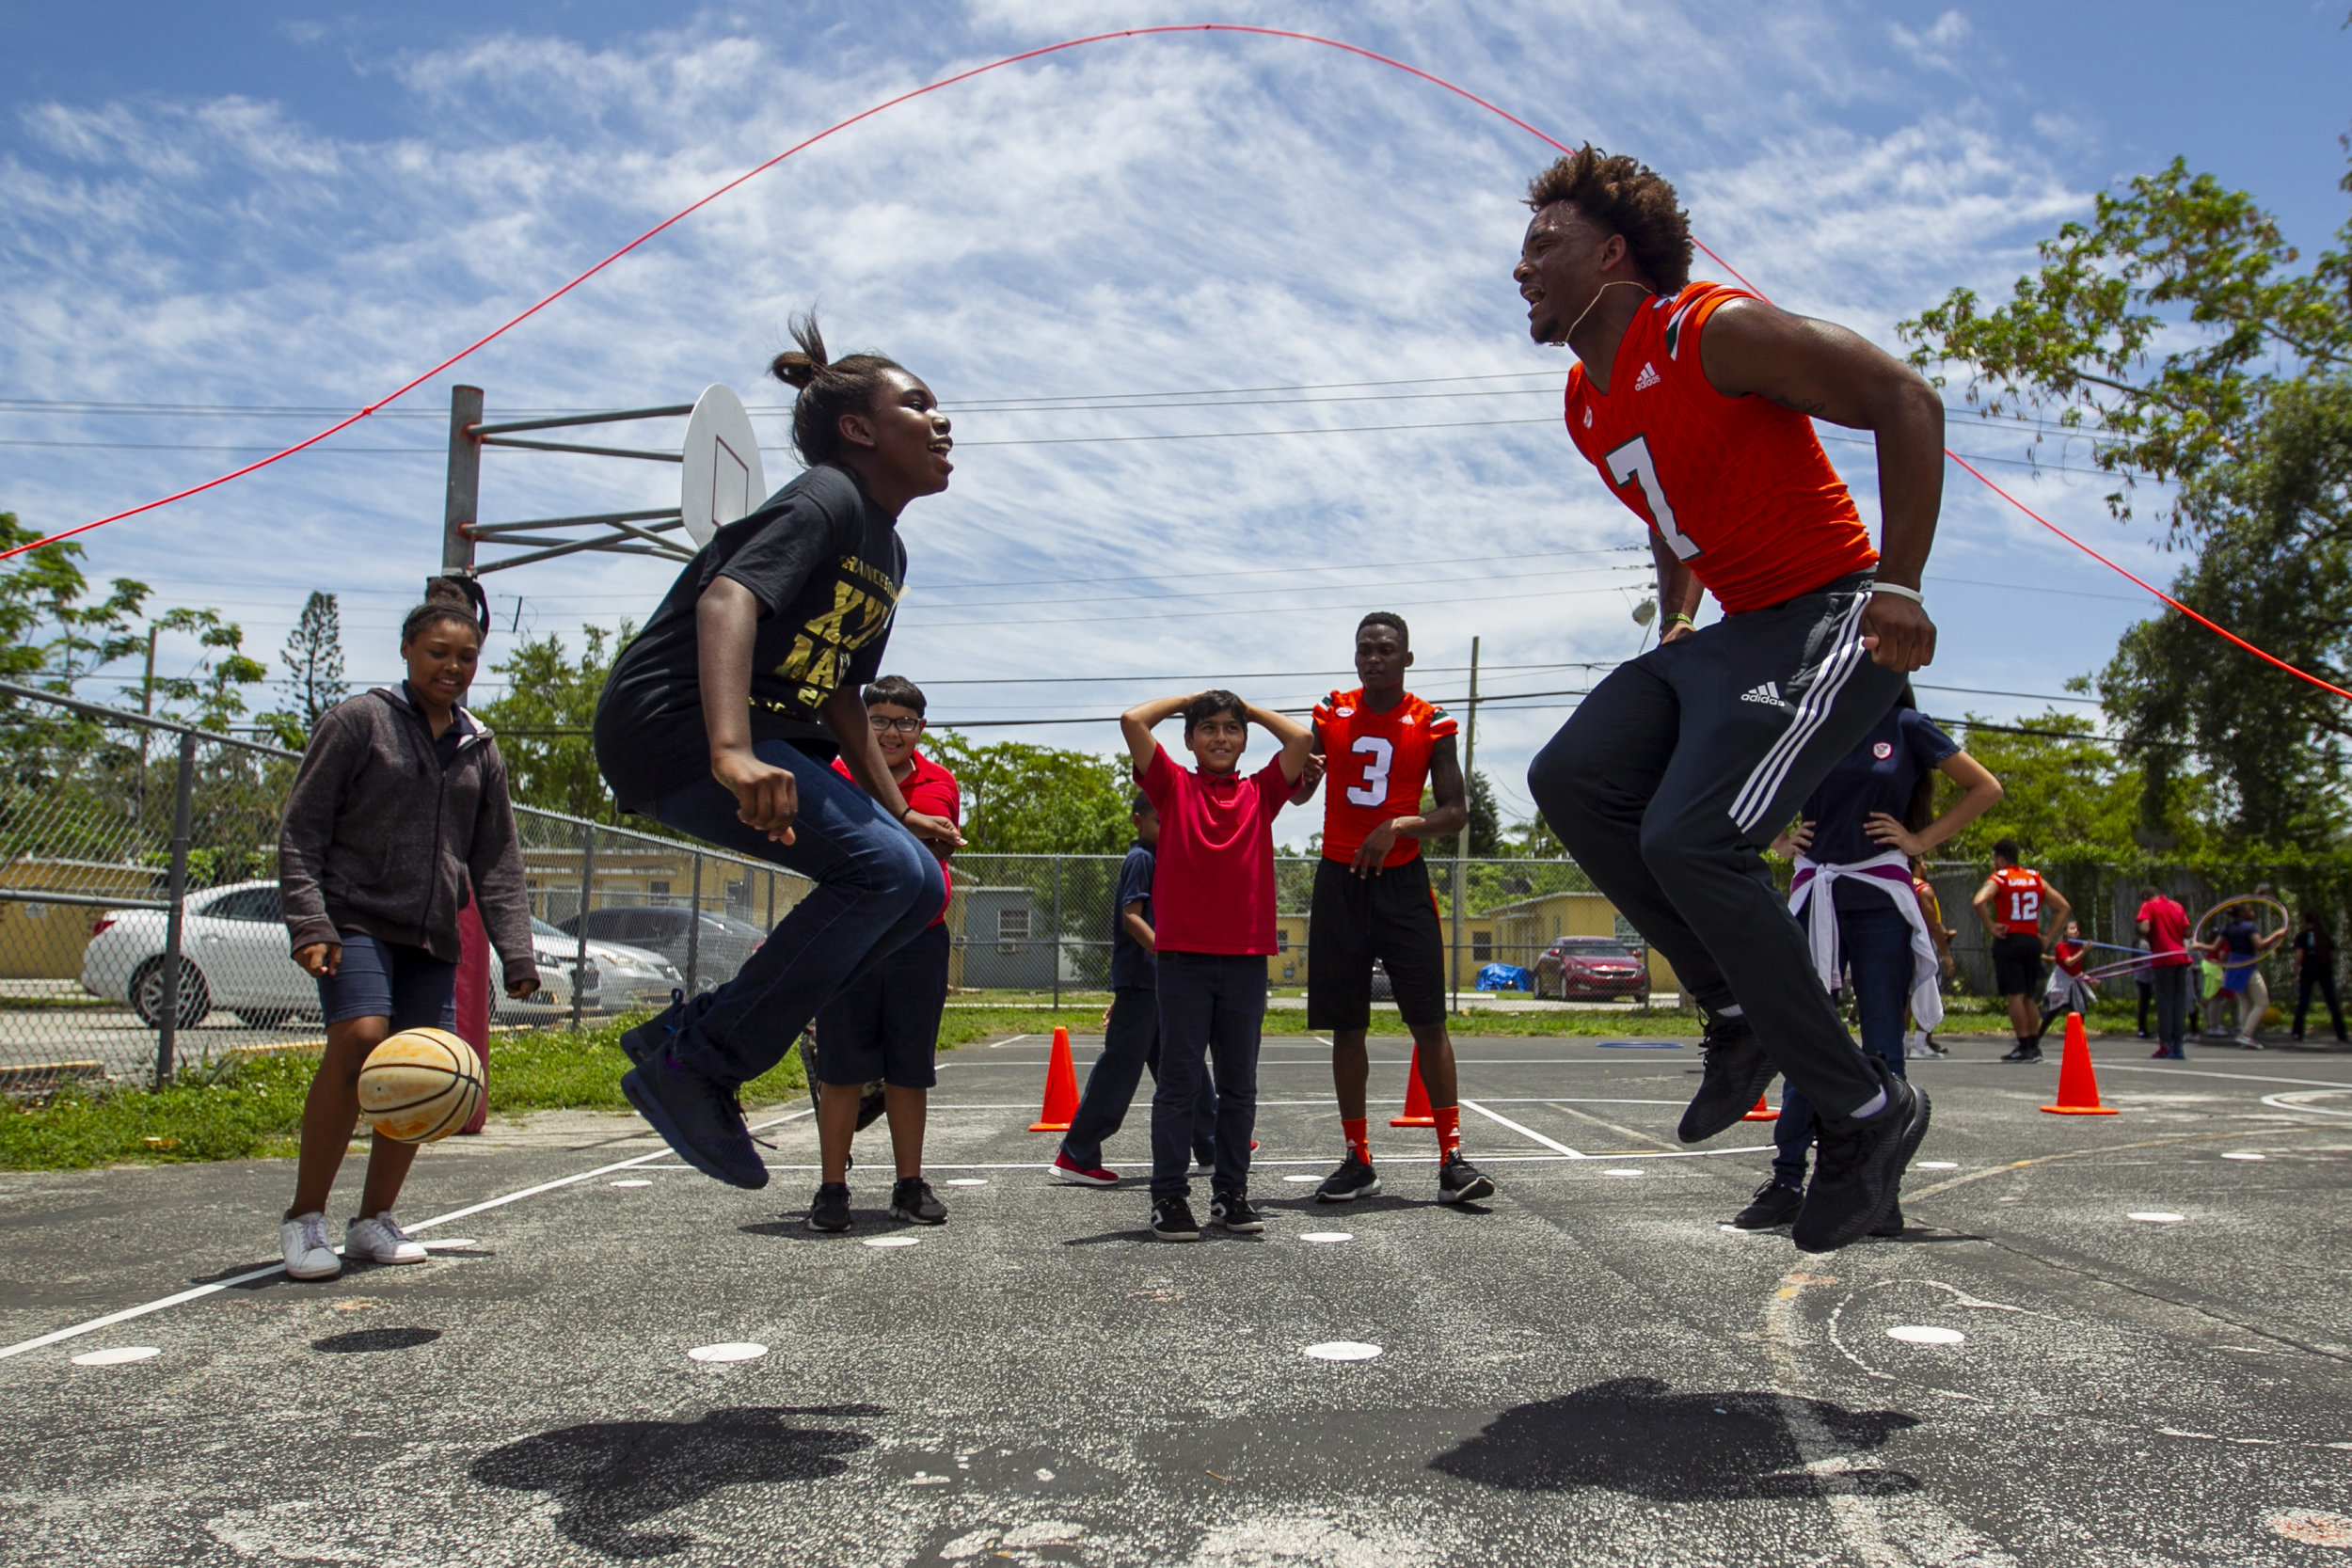 Karis Bellomy, left, jumps rope with University of Miami Hurricane player Brian Hightower (7) at Tucker Elementary School in Coconut Grove on Wednesday, May 23, 2018. The players participated in a day of community service at Tucker Elementary where they interacted with kids by throwing footballs, playing basketball and hula hooping.